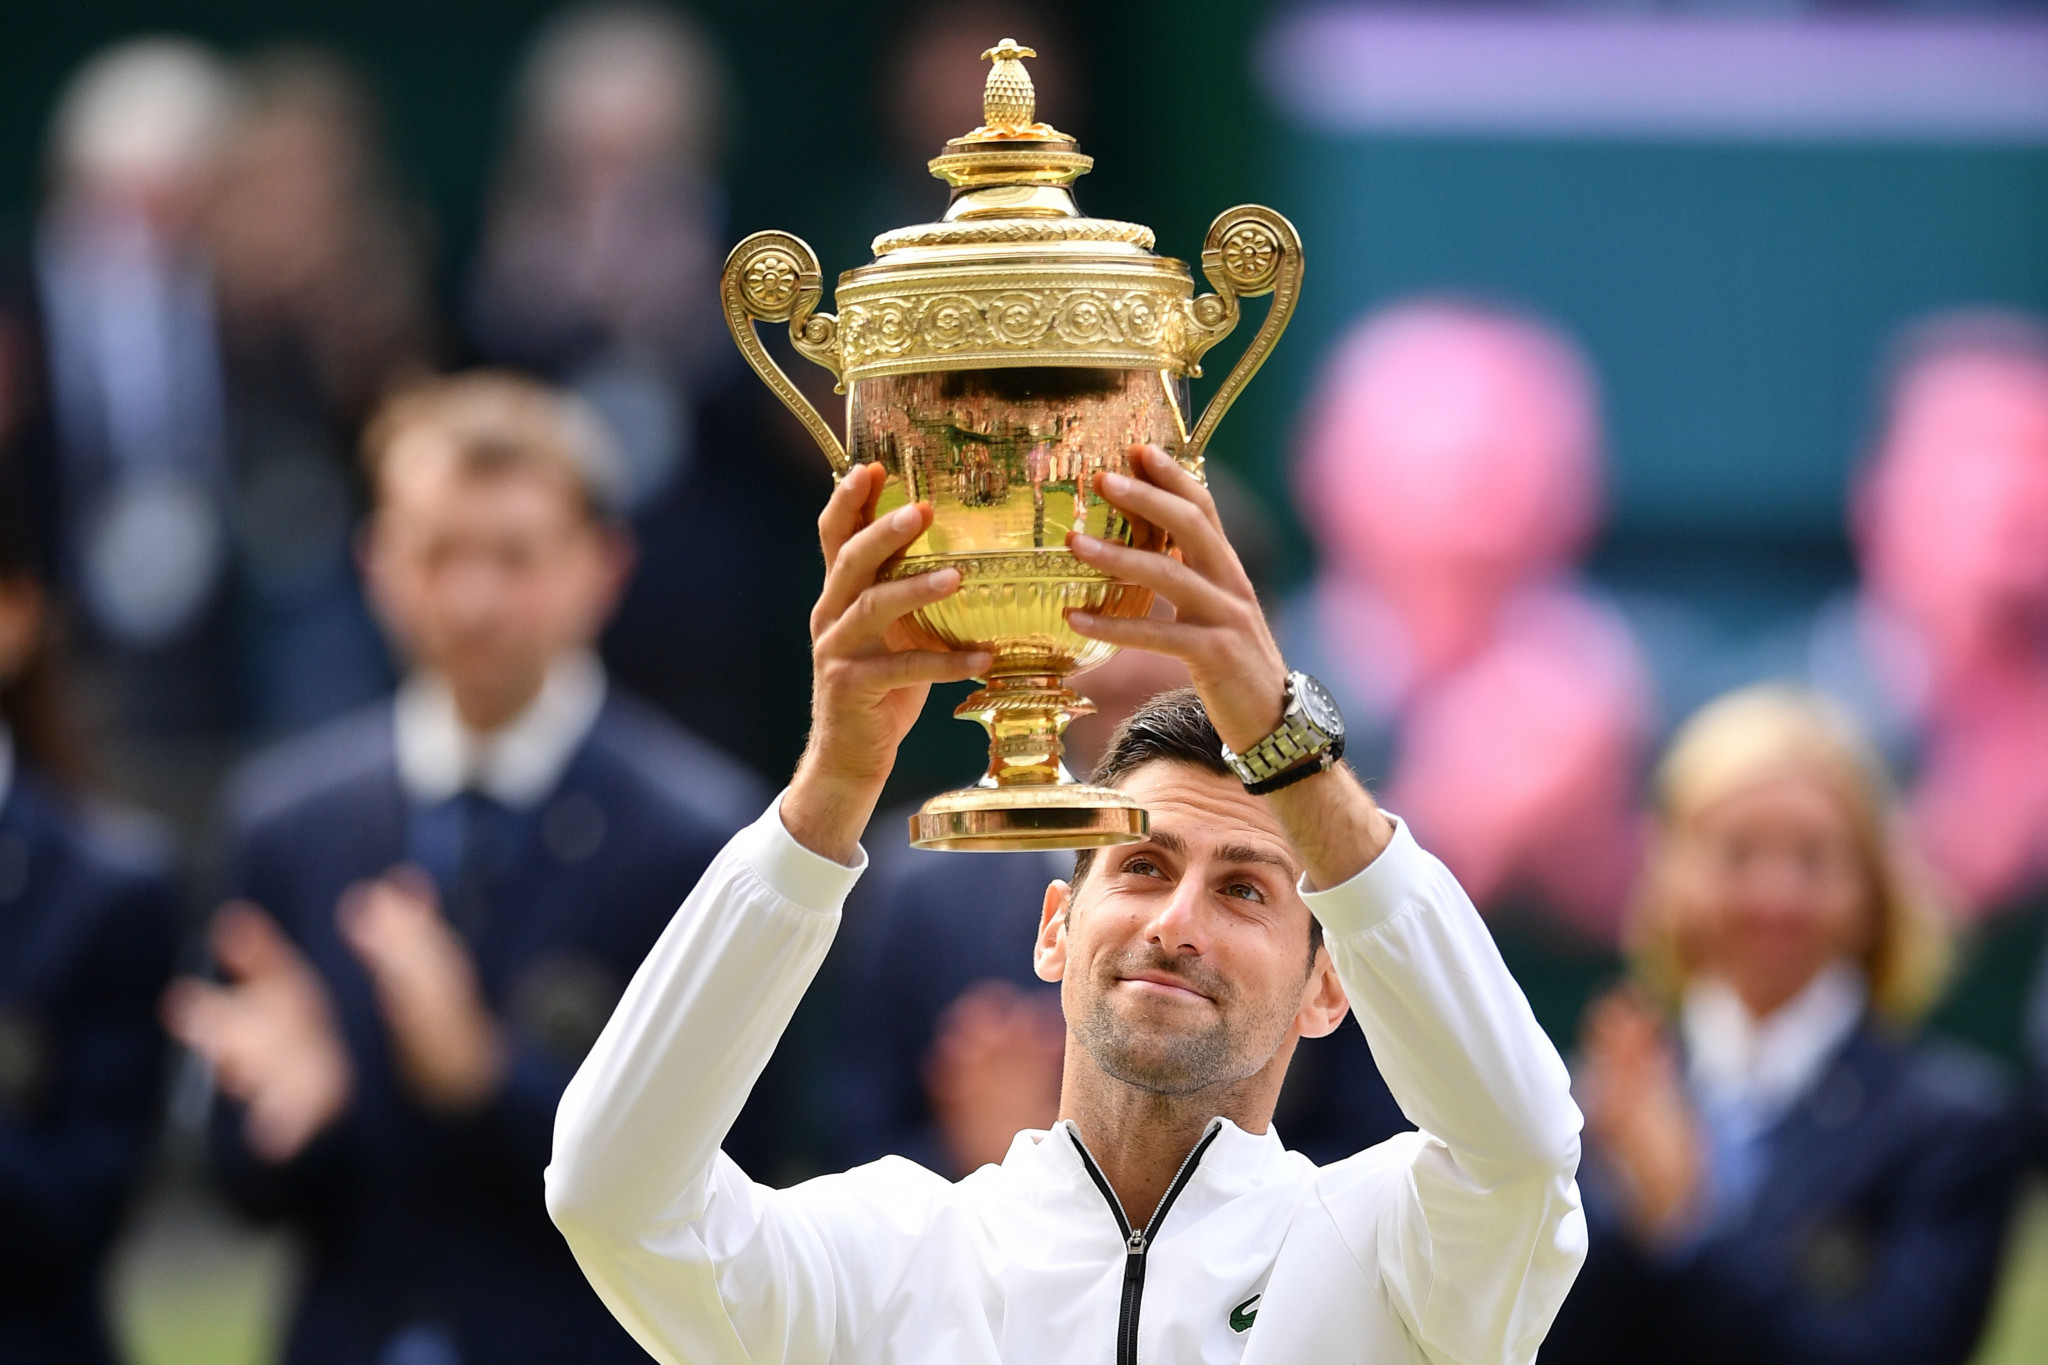 Djokovic wins epic Wimbledon final against Federer